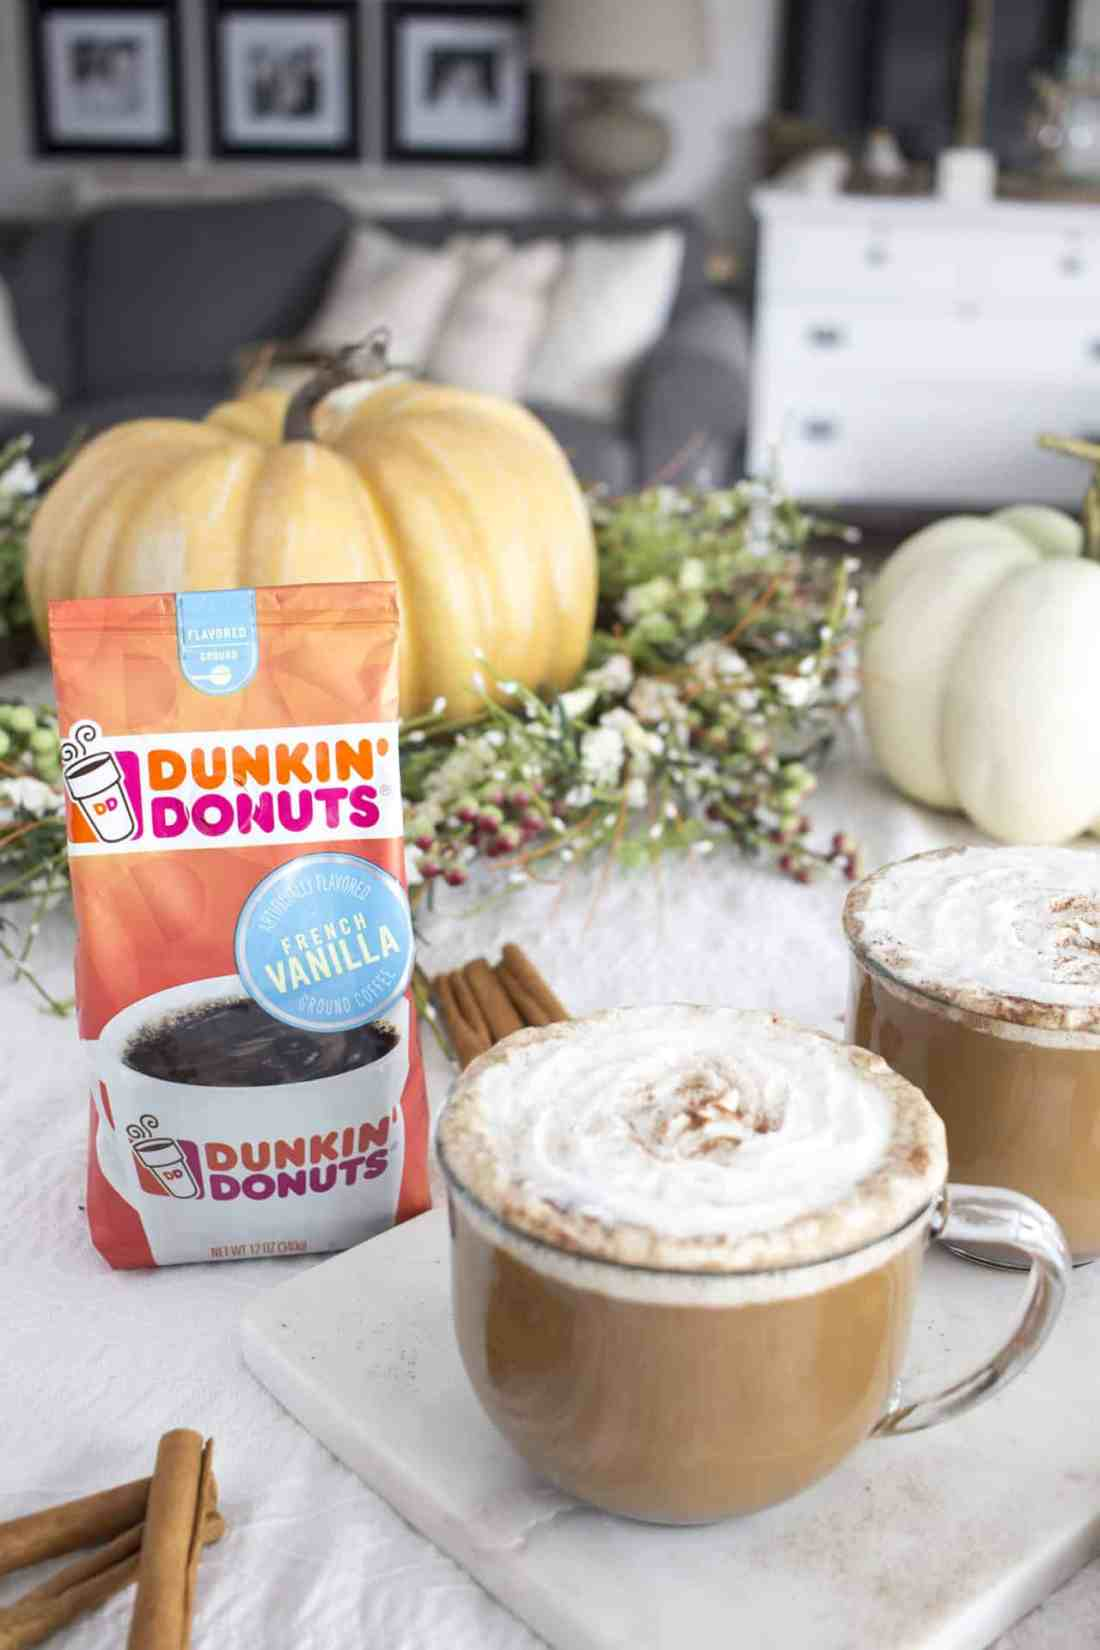 Spiced Vanilla Latte with Dunkin Donuts at Walmart